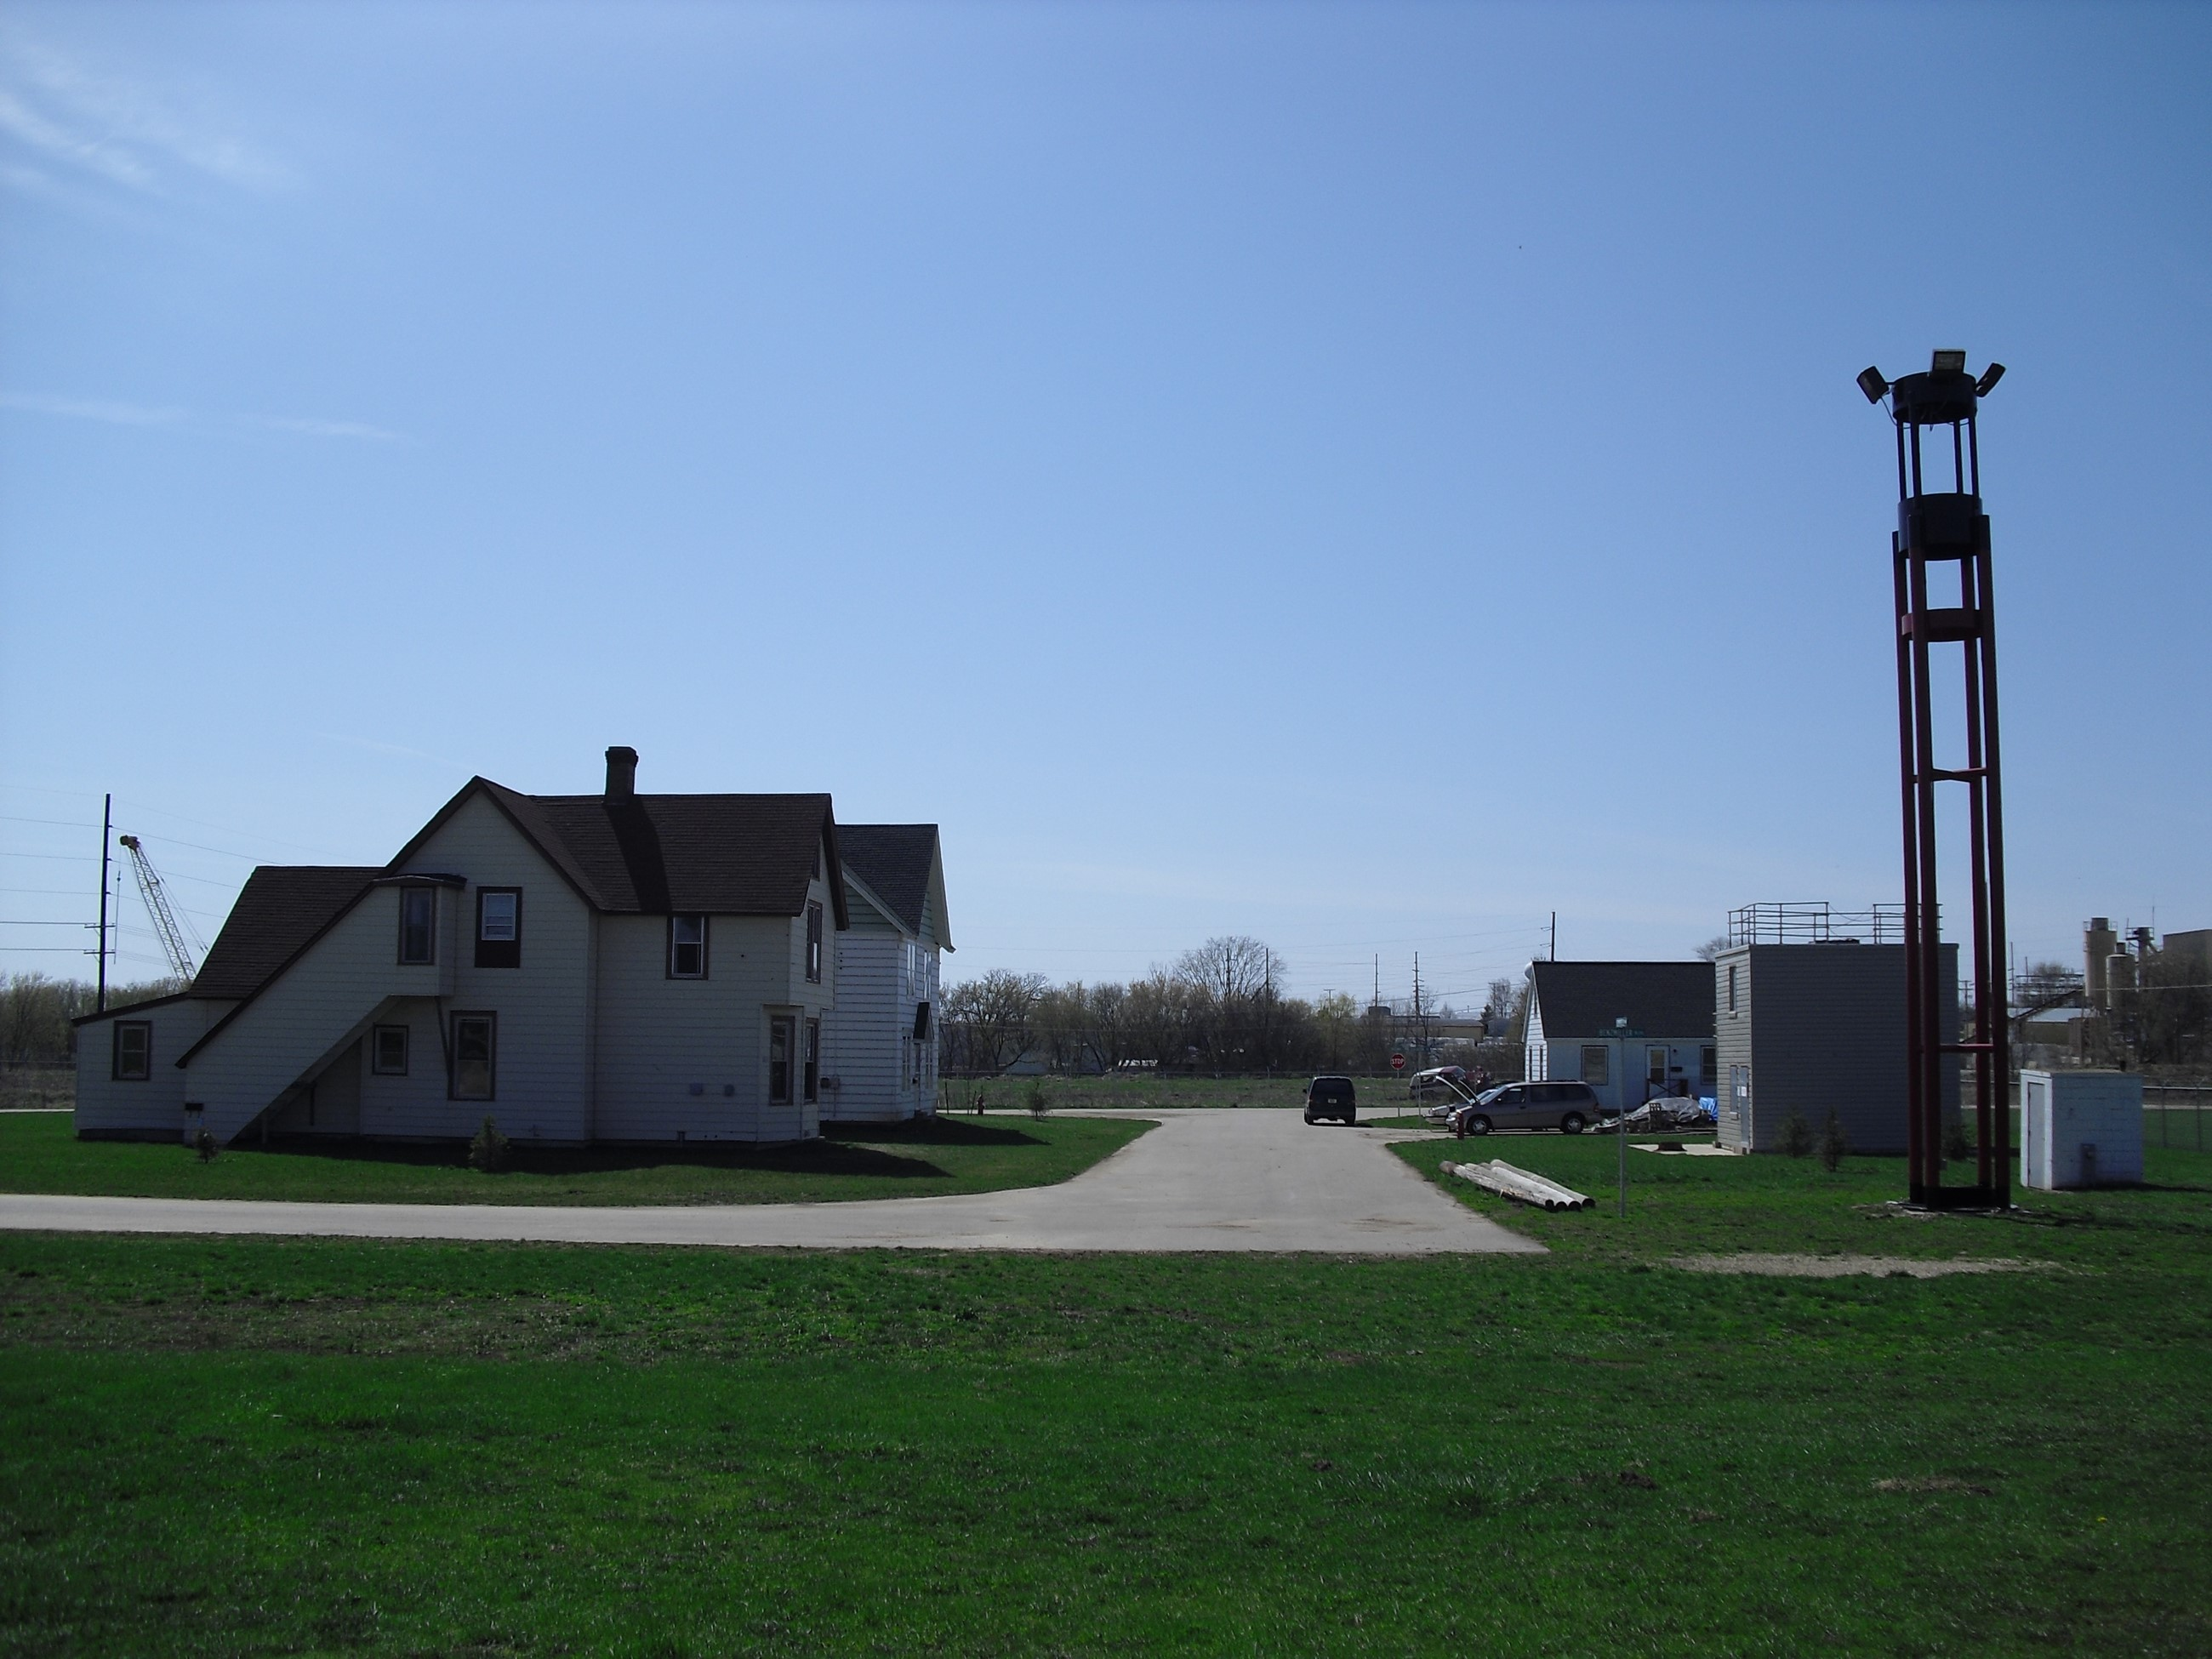 The training facility used by the Fire Department